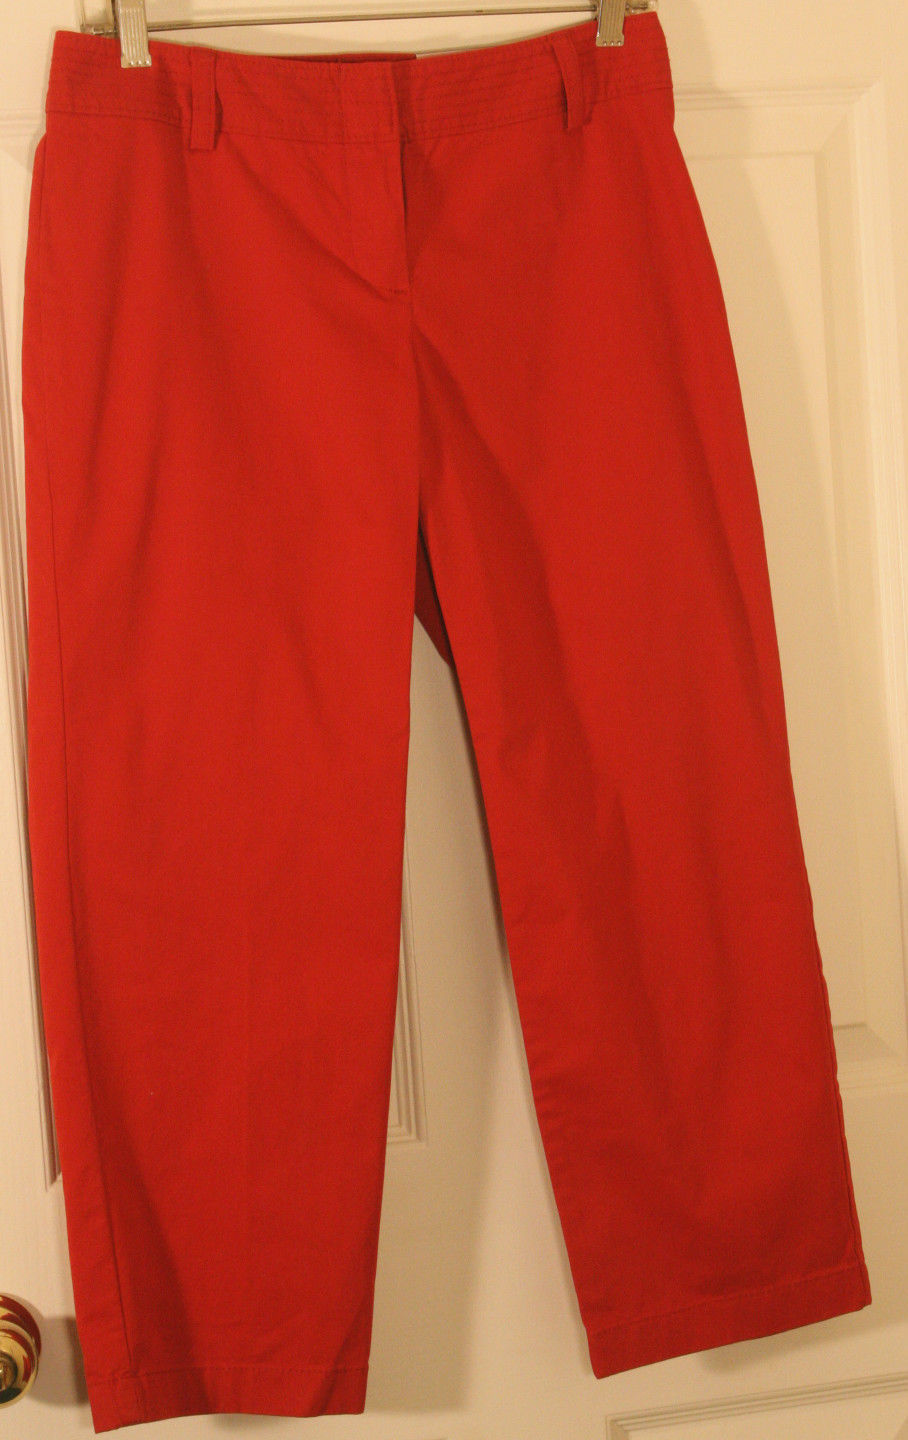 Primary image for  ANN TAYLOR OP SIGNATURE FIT  LOWER ON WAIST RED WOMENS PANTS 2 P COTTON NEW $39